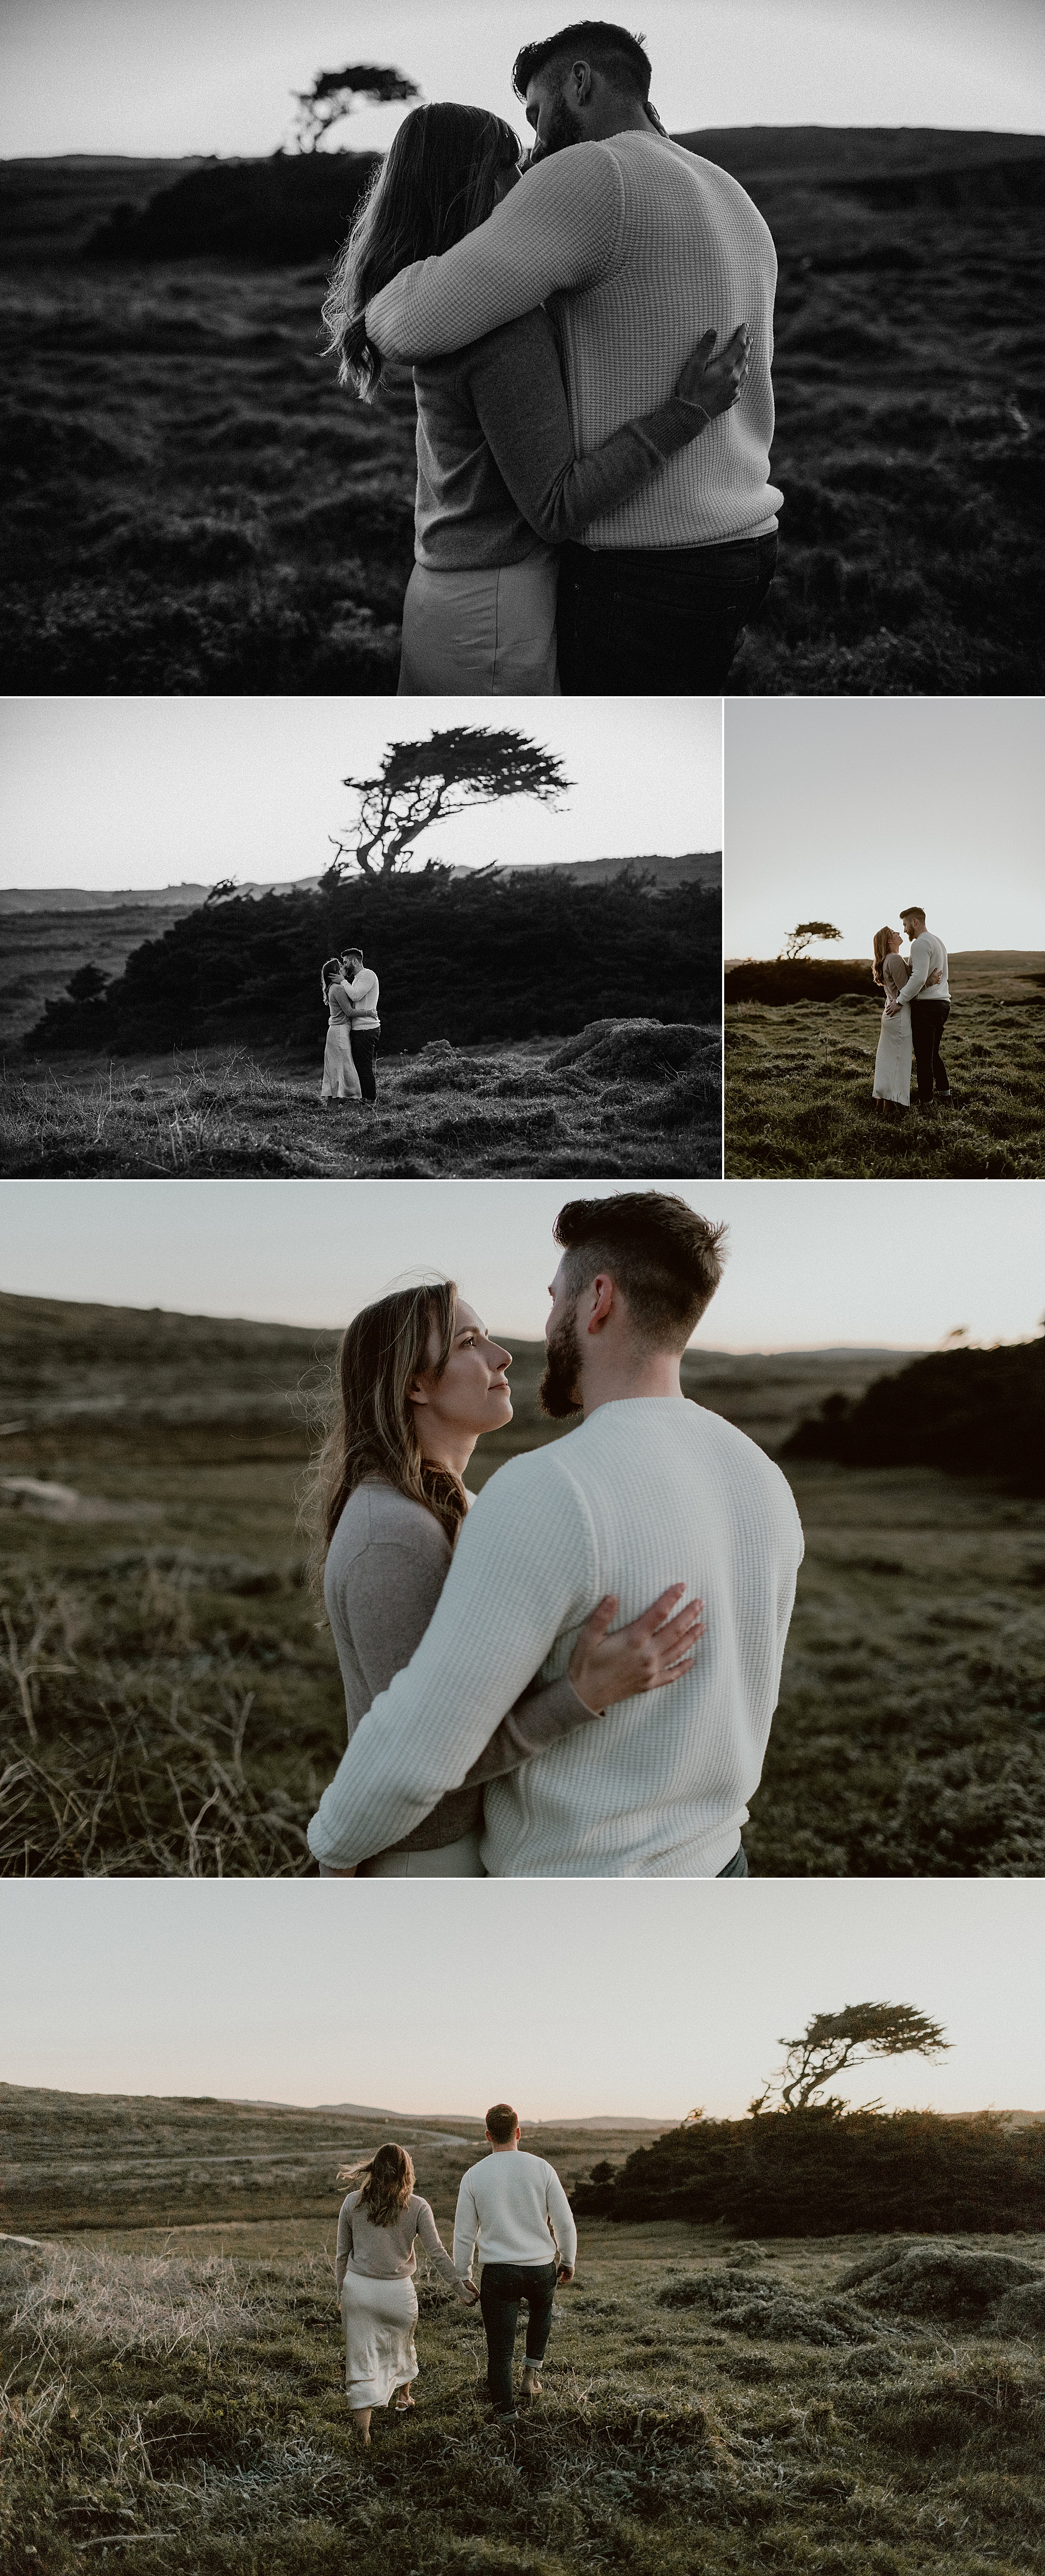 Bodega Headlands Sunrise Engagement Shoot | Gretchen Gause Photography #BodegaBay #EngagementSession #SunriseSession #SanFranciscoEngagementPhotographer #BayAreaWeddingPhotographer #DestinationWedding #RealCouple